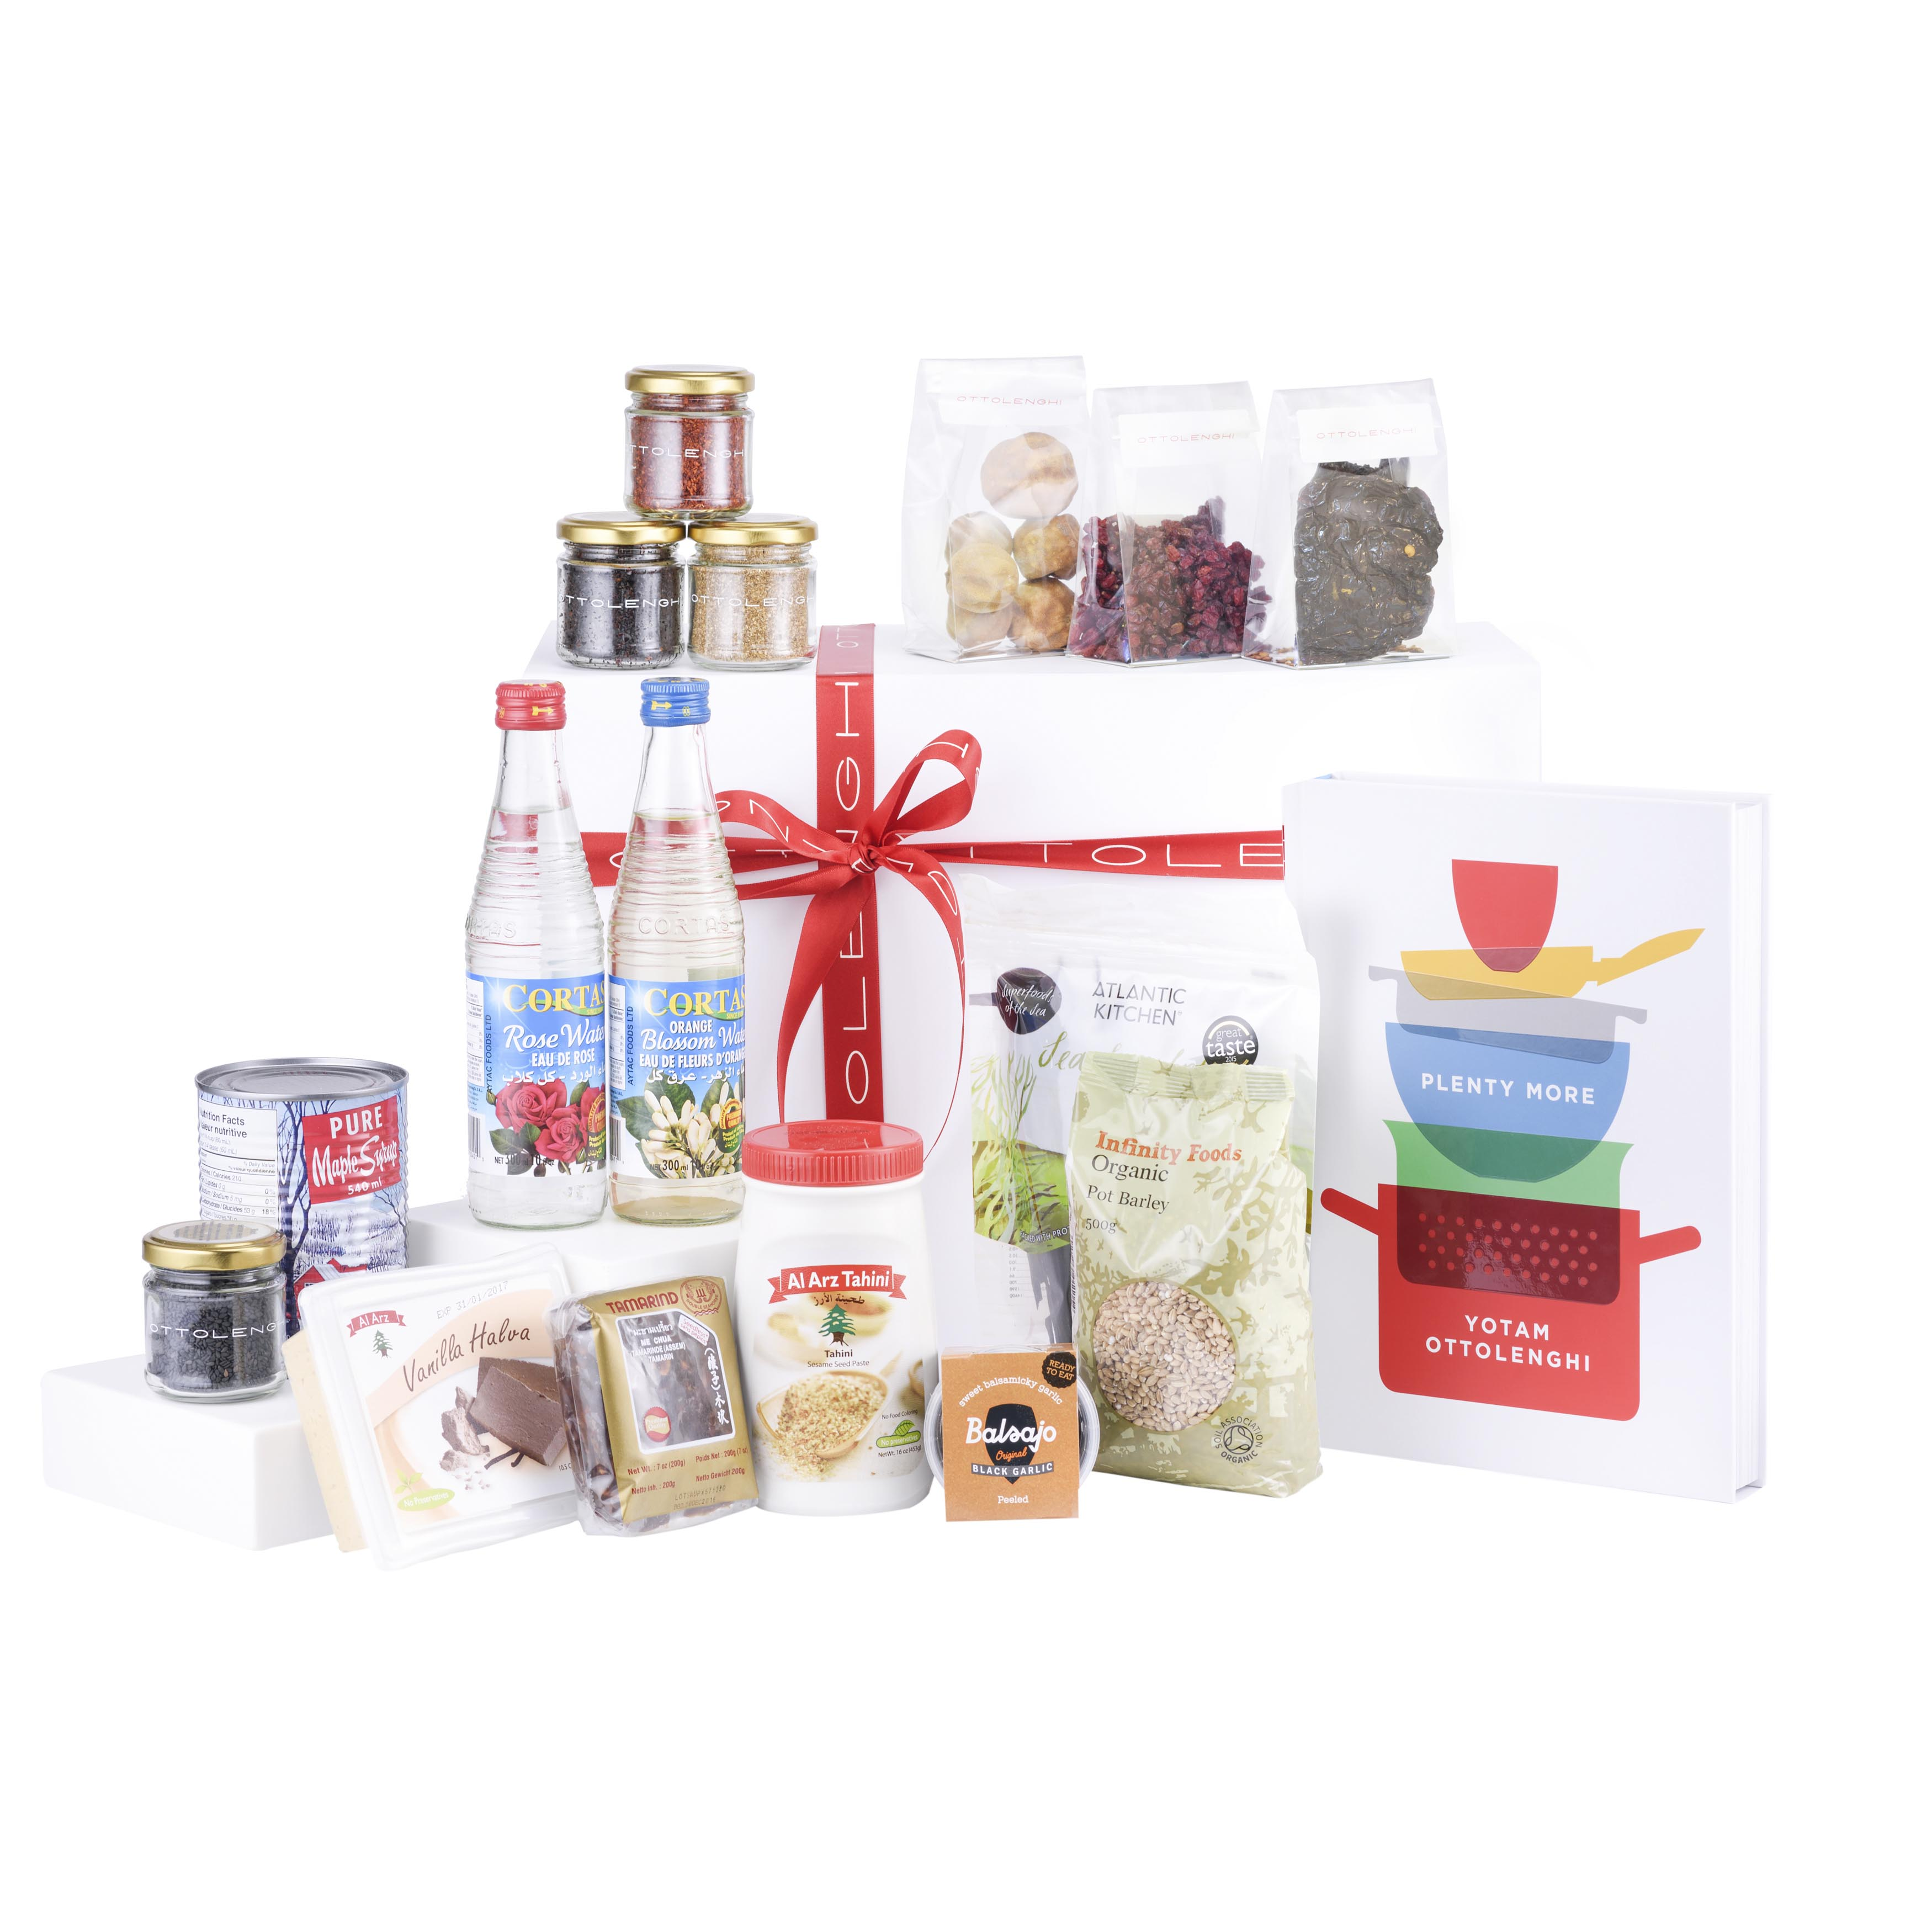 64 Foodie Gifts For Christmas 2016 Festive Gift Guide